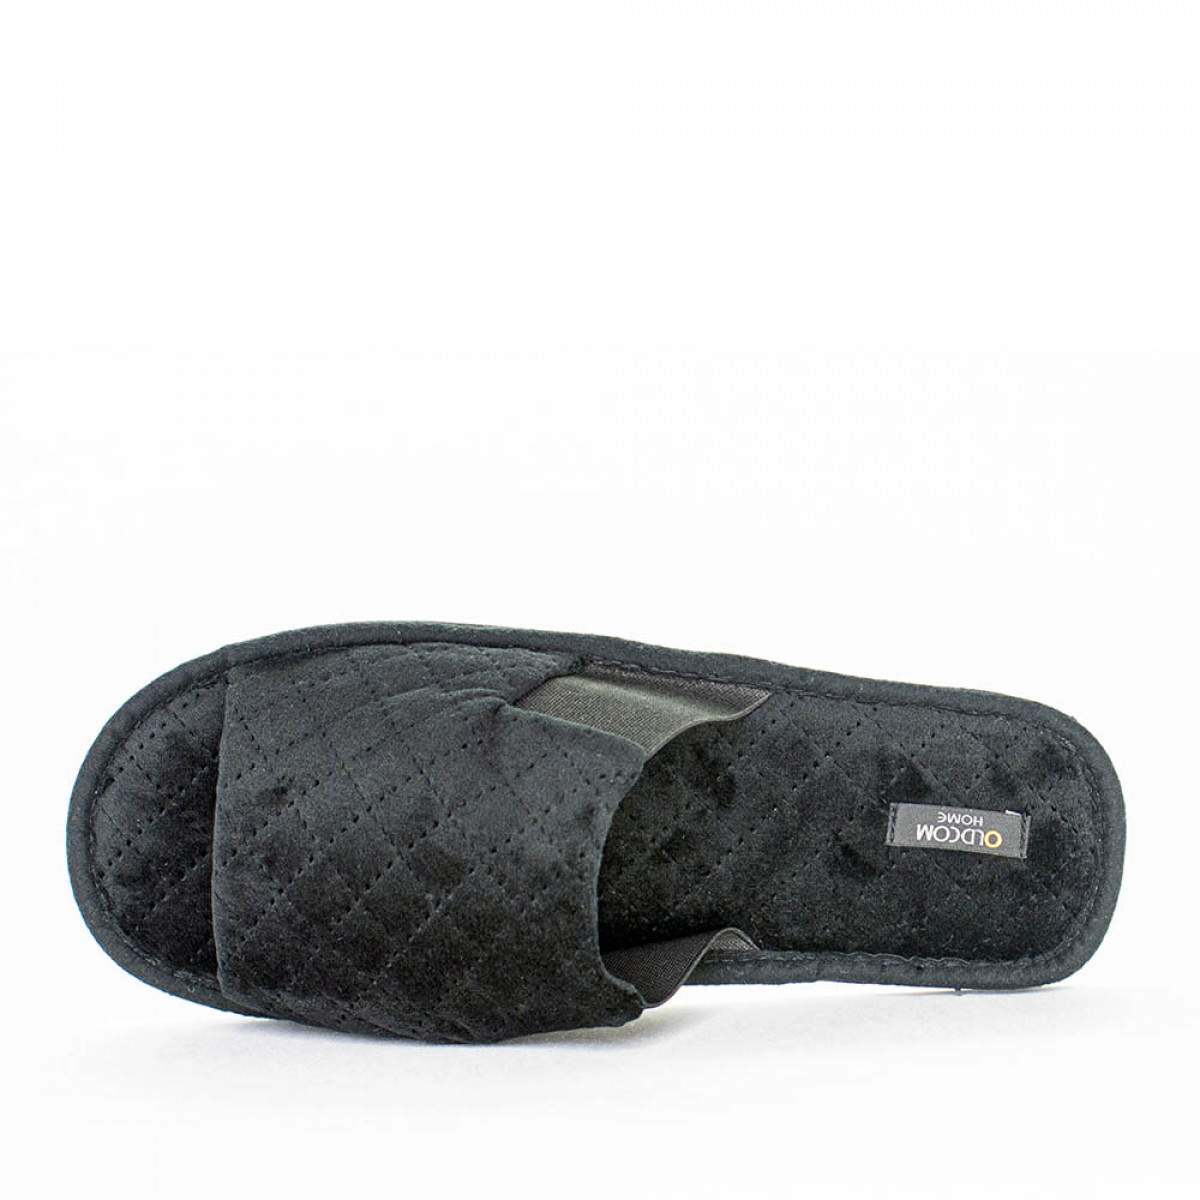 Home slippers TOMAS, Black